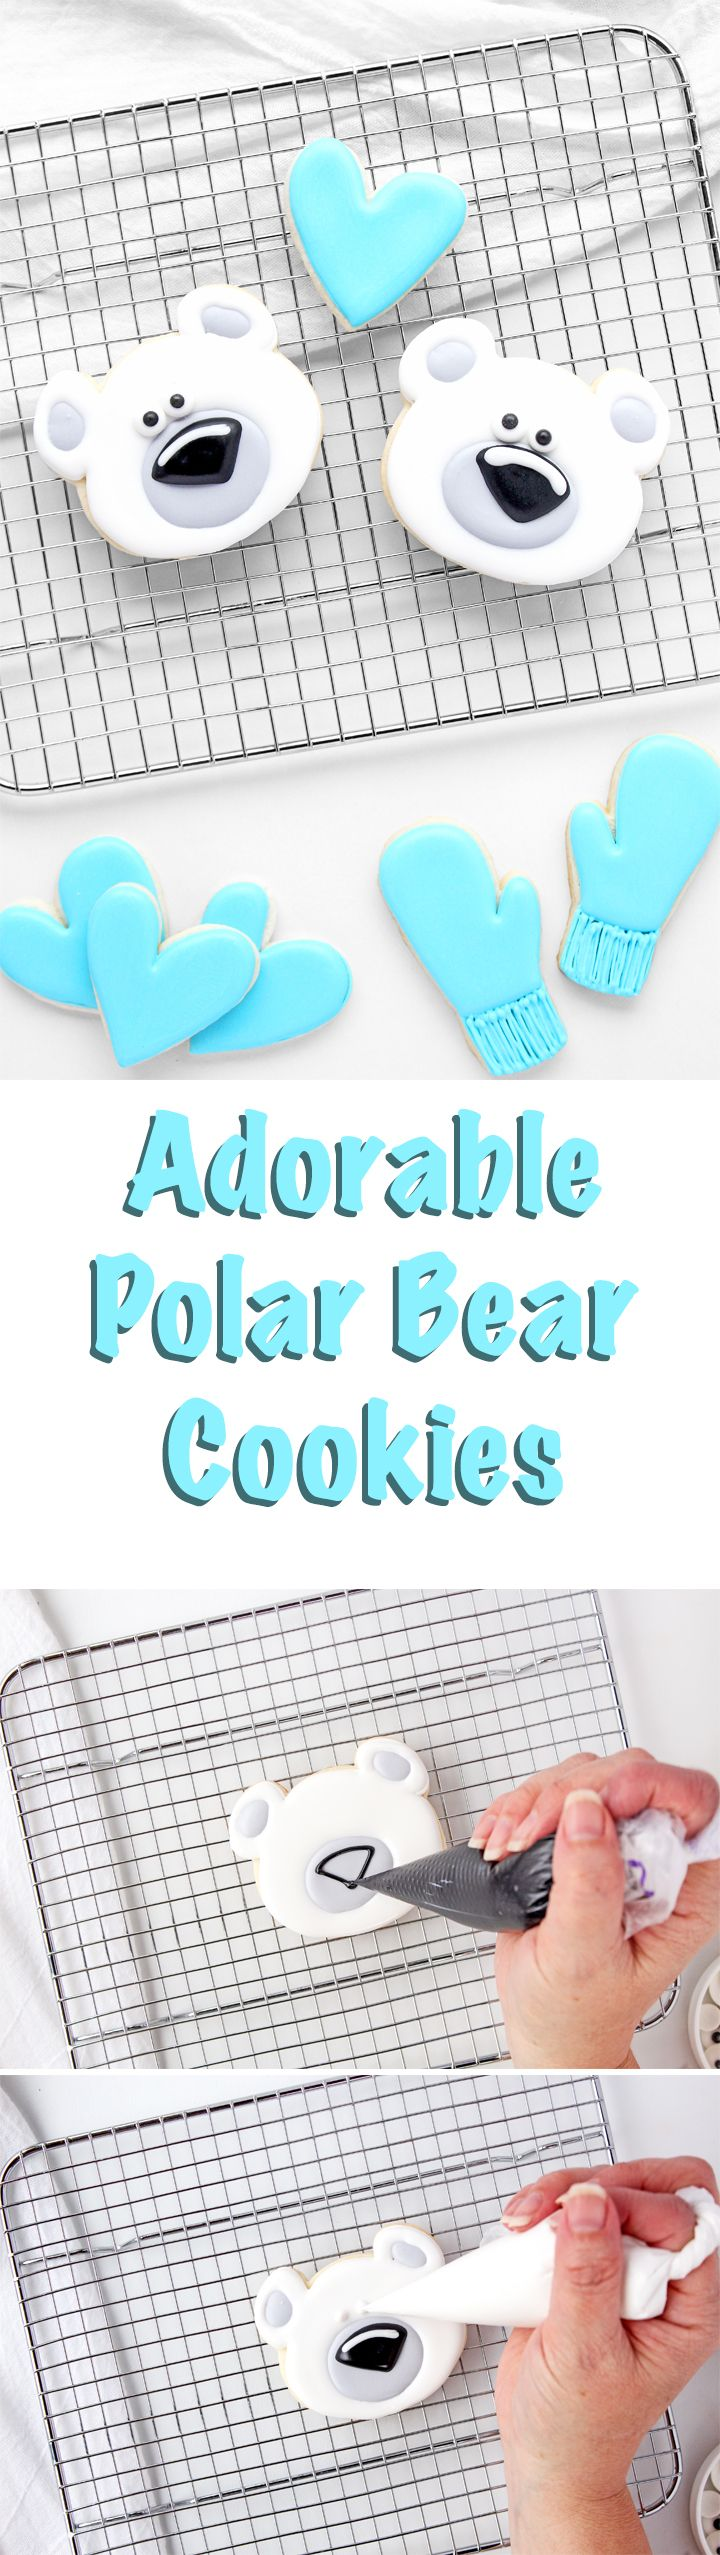 How to Make Adorable Polar Bear Cookies Decorated with Royal Icing   The Bearfoot Baker